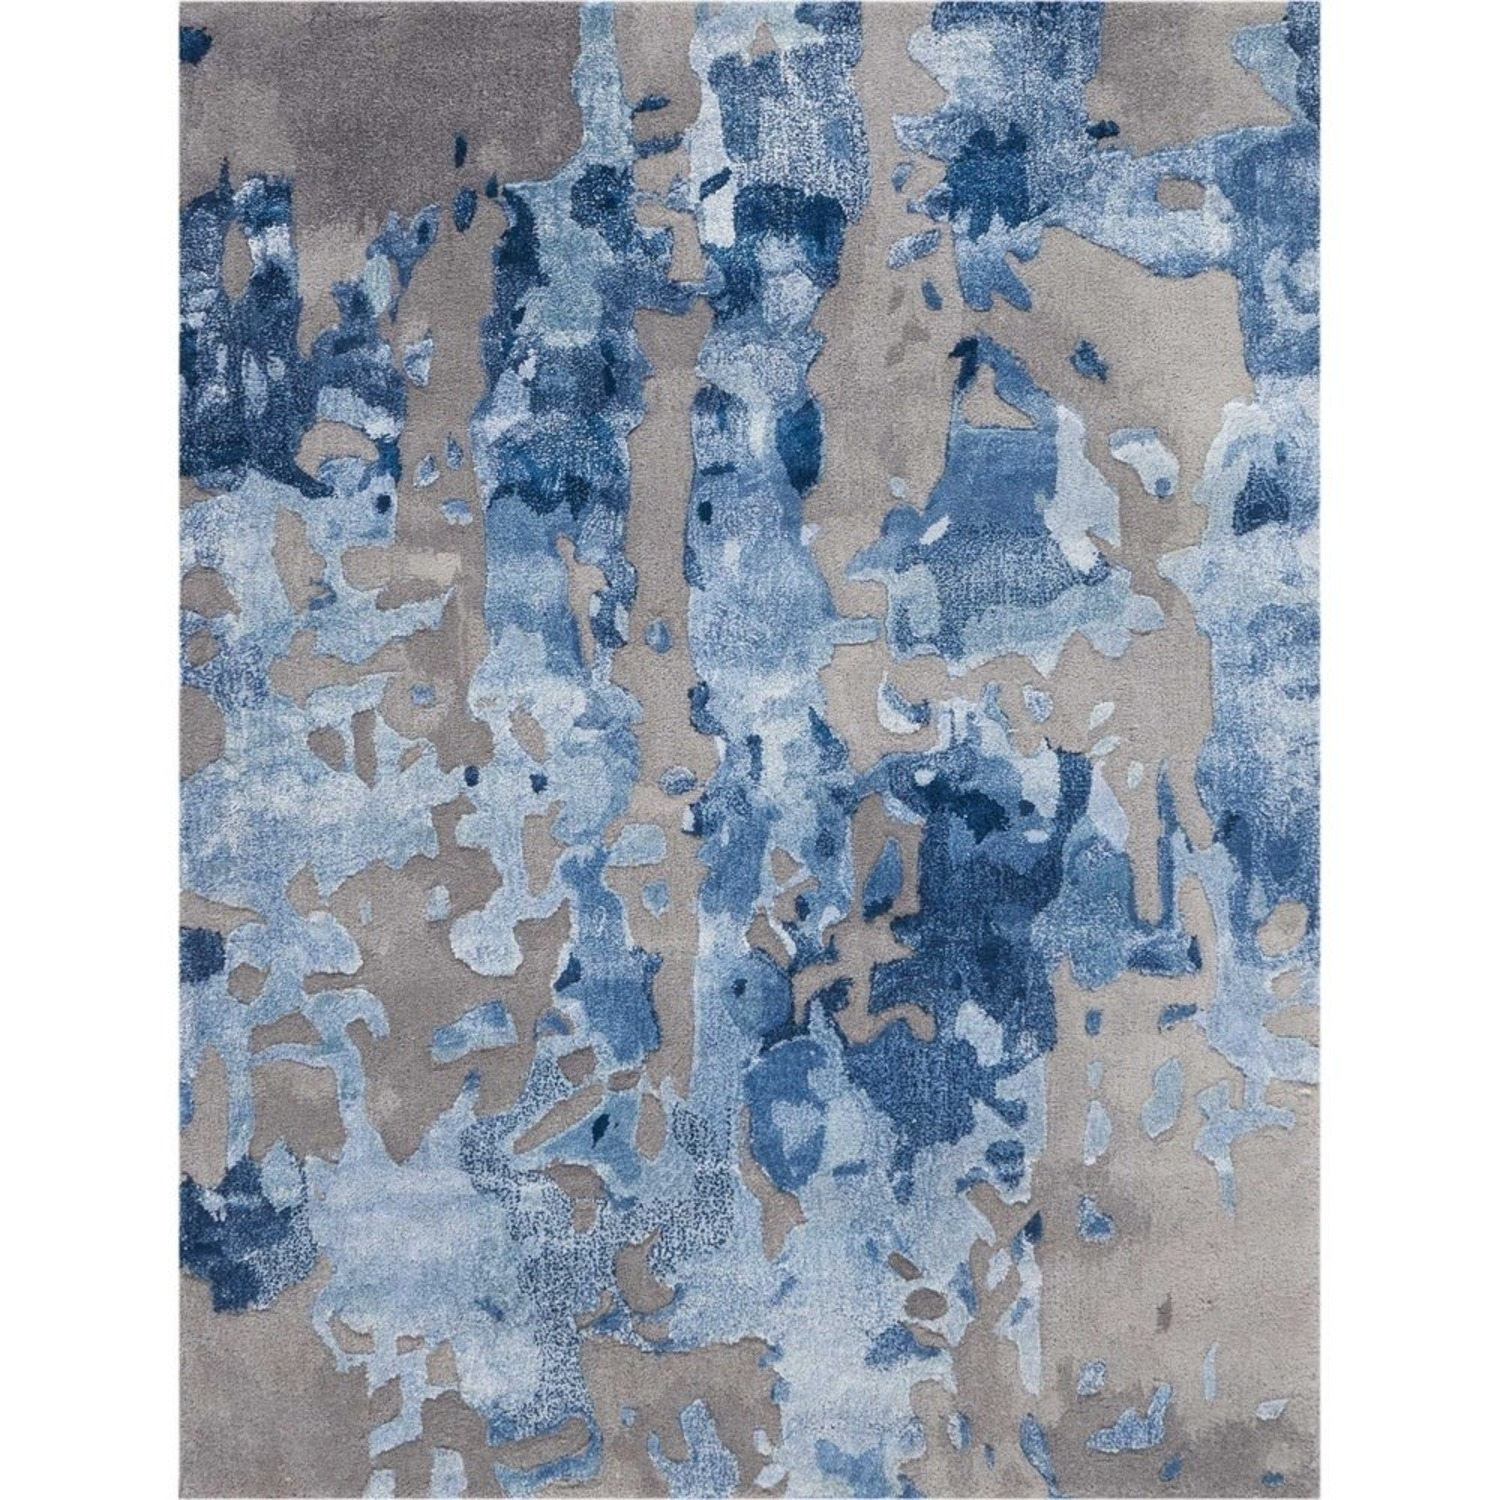 Nourison Blue Gray Abstract Area Rug 8ft x 10ft - image-3